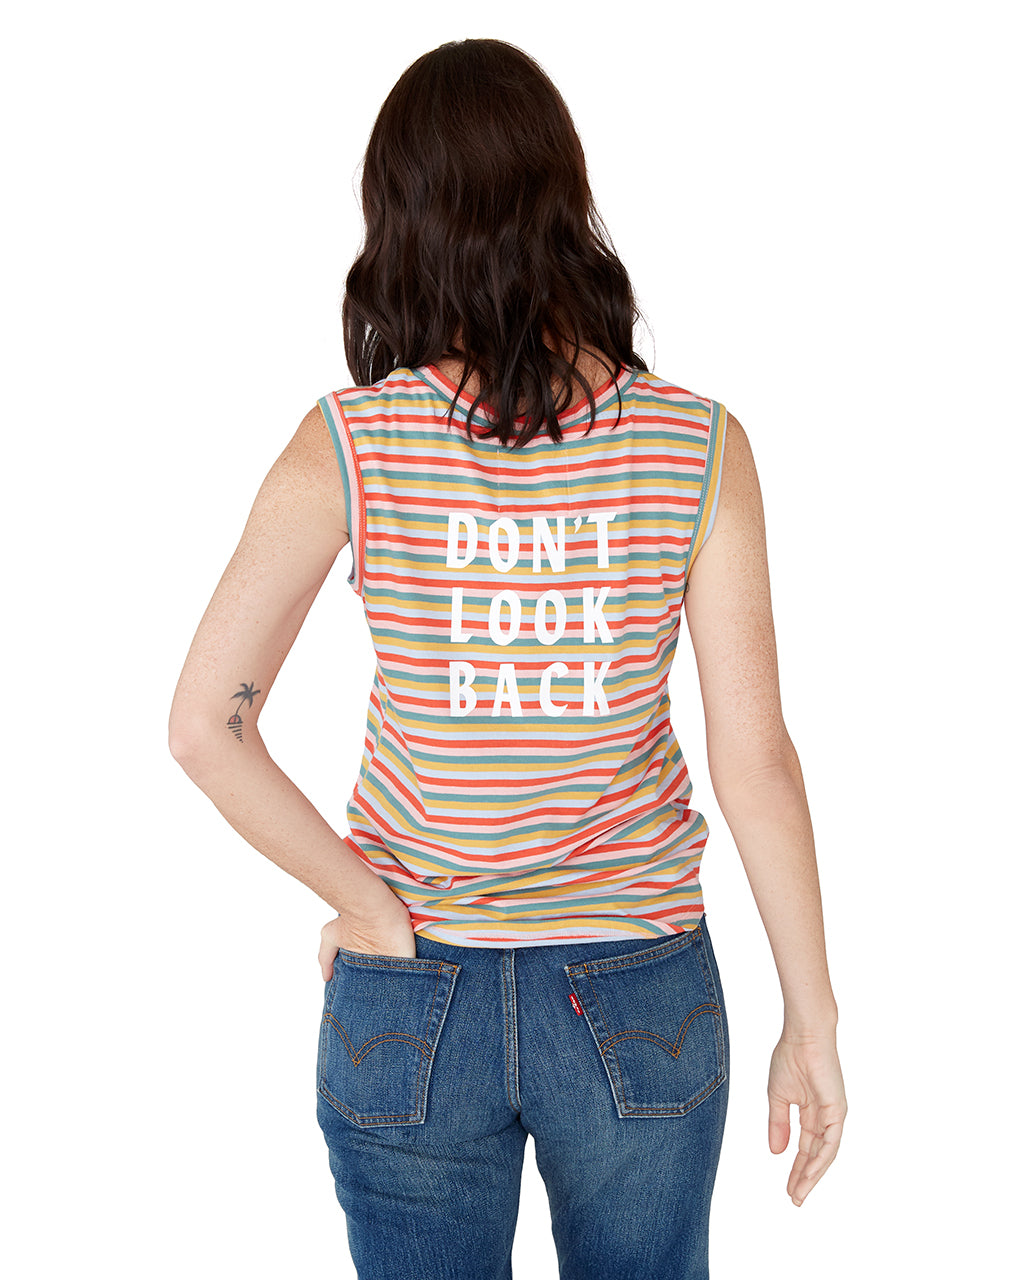 This tank top comes in a colorful striped pattern, with 'Don't Look Back' printed on the back.